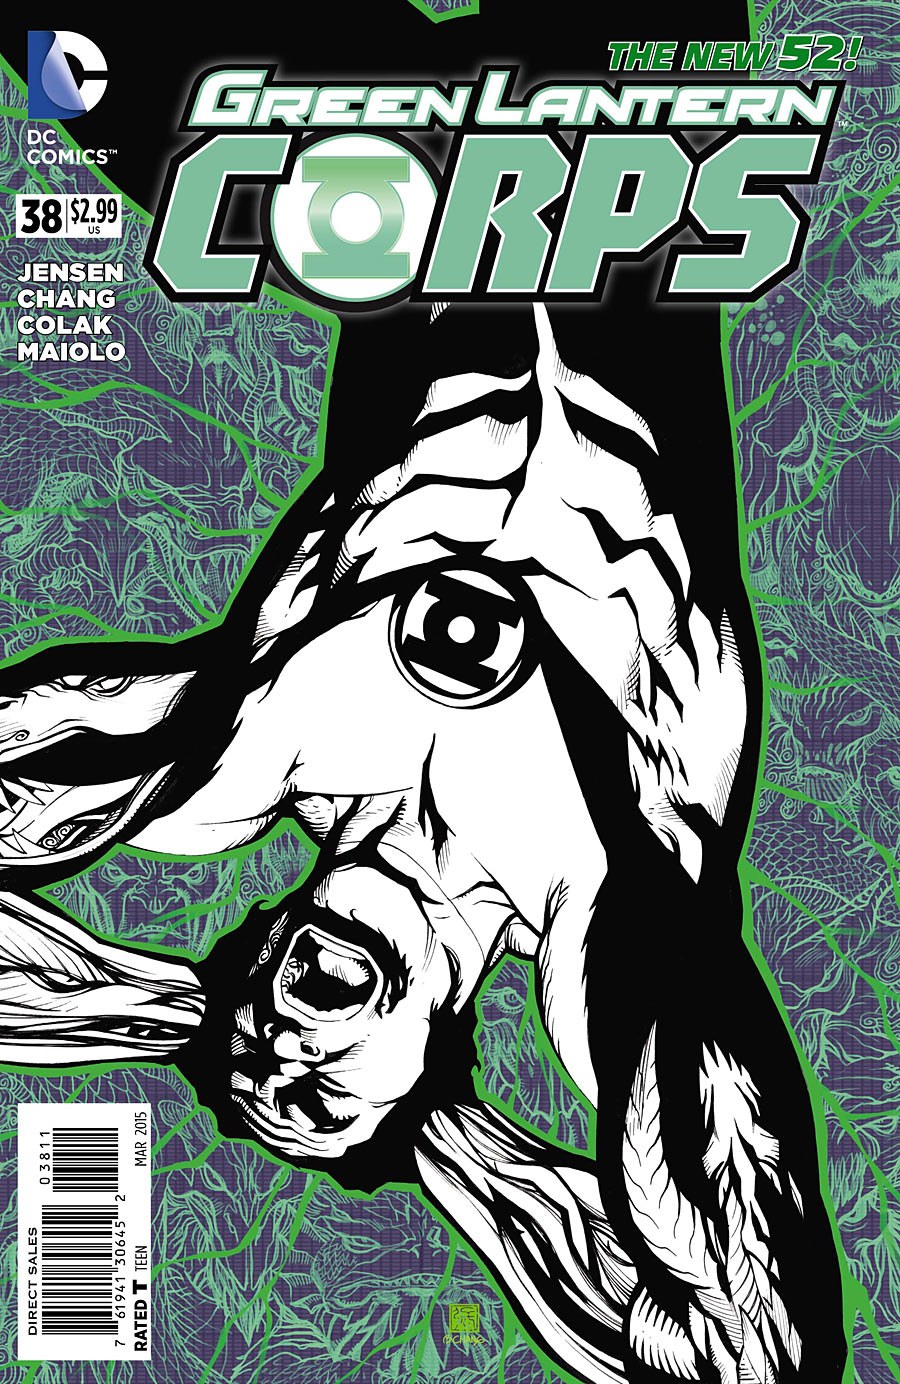 Green lantern corps comic cover - photo#21